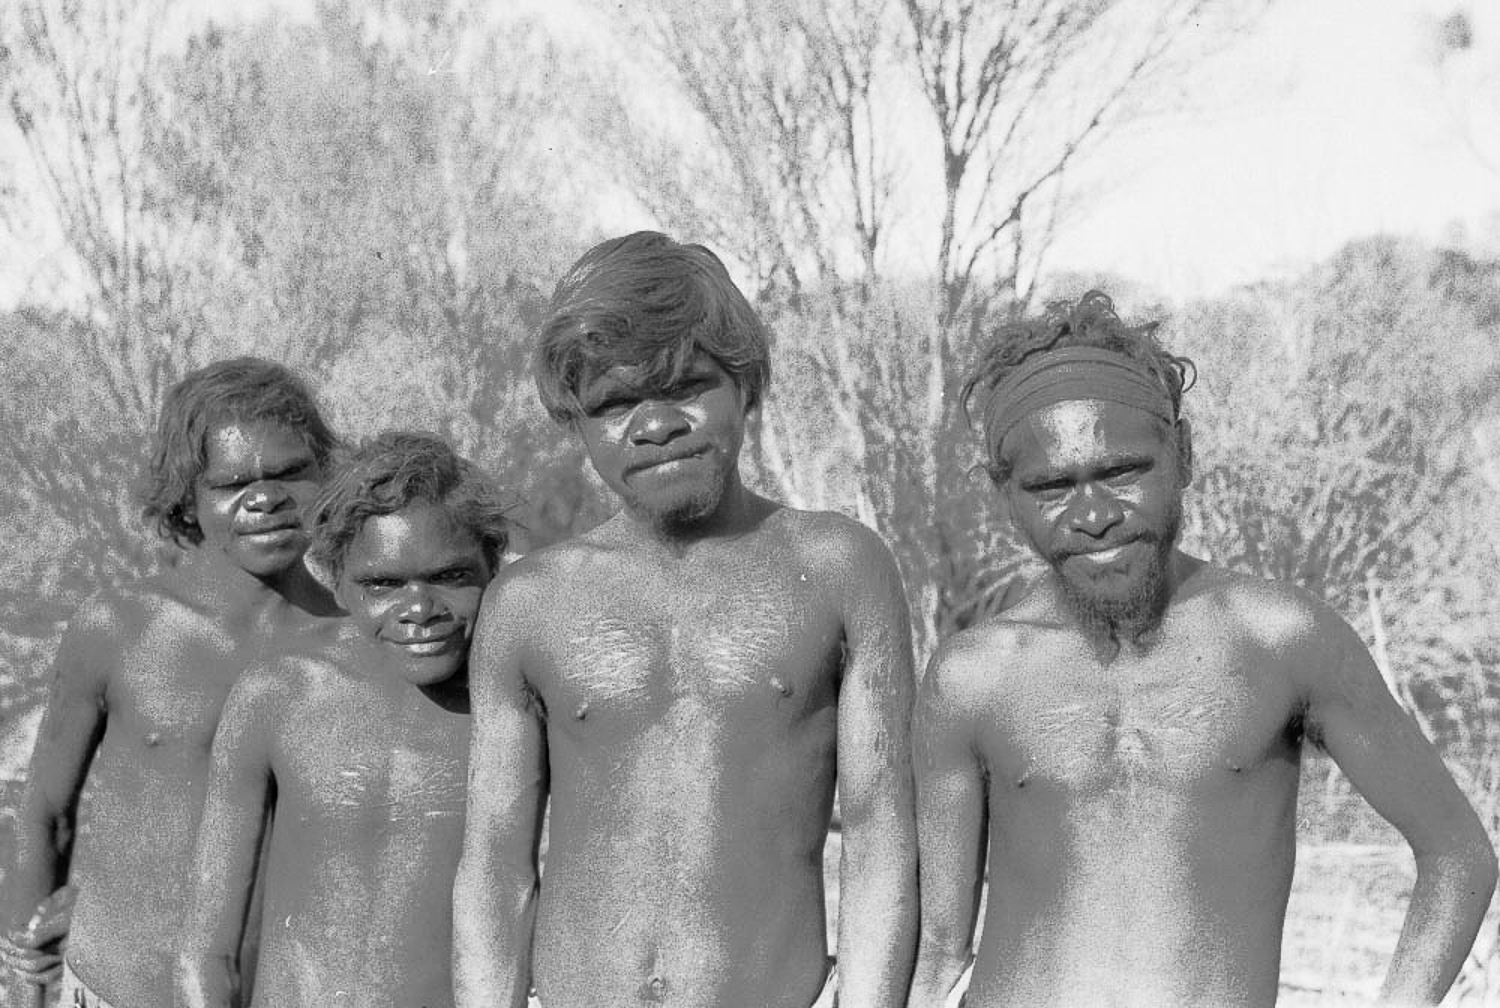 Tom Underwood, Bill Jamieson, Roy Underwood, Roger Jamieson after being 'found' on Spinifex Country, now called the Great Victoria Desert. In the early 1950s, many of the Spinifex People were still living traditional lifestyles deep in the remote desert; this was the first meeting with white people. Roy Underwood would eventually become an internationally recognised artist and would travel the world to tell the story of his people through art.